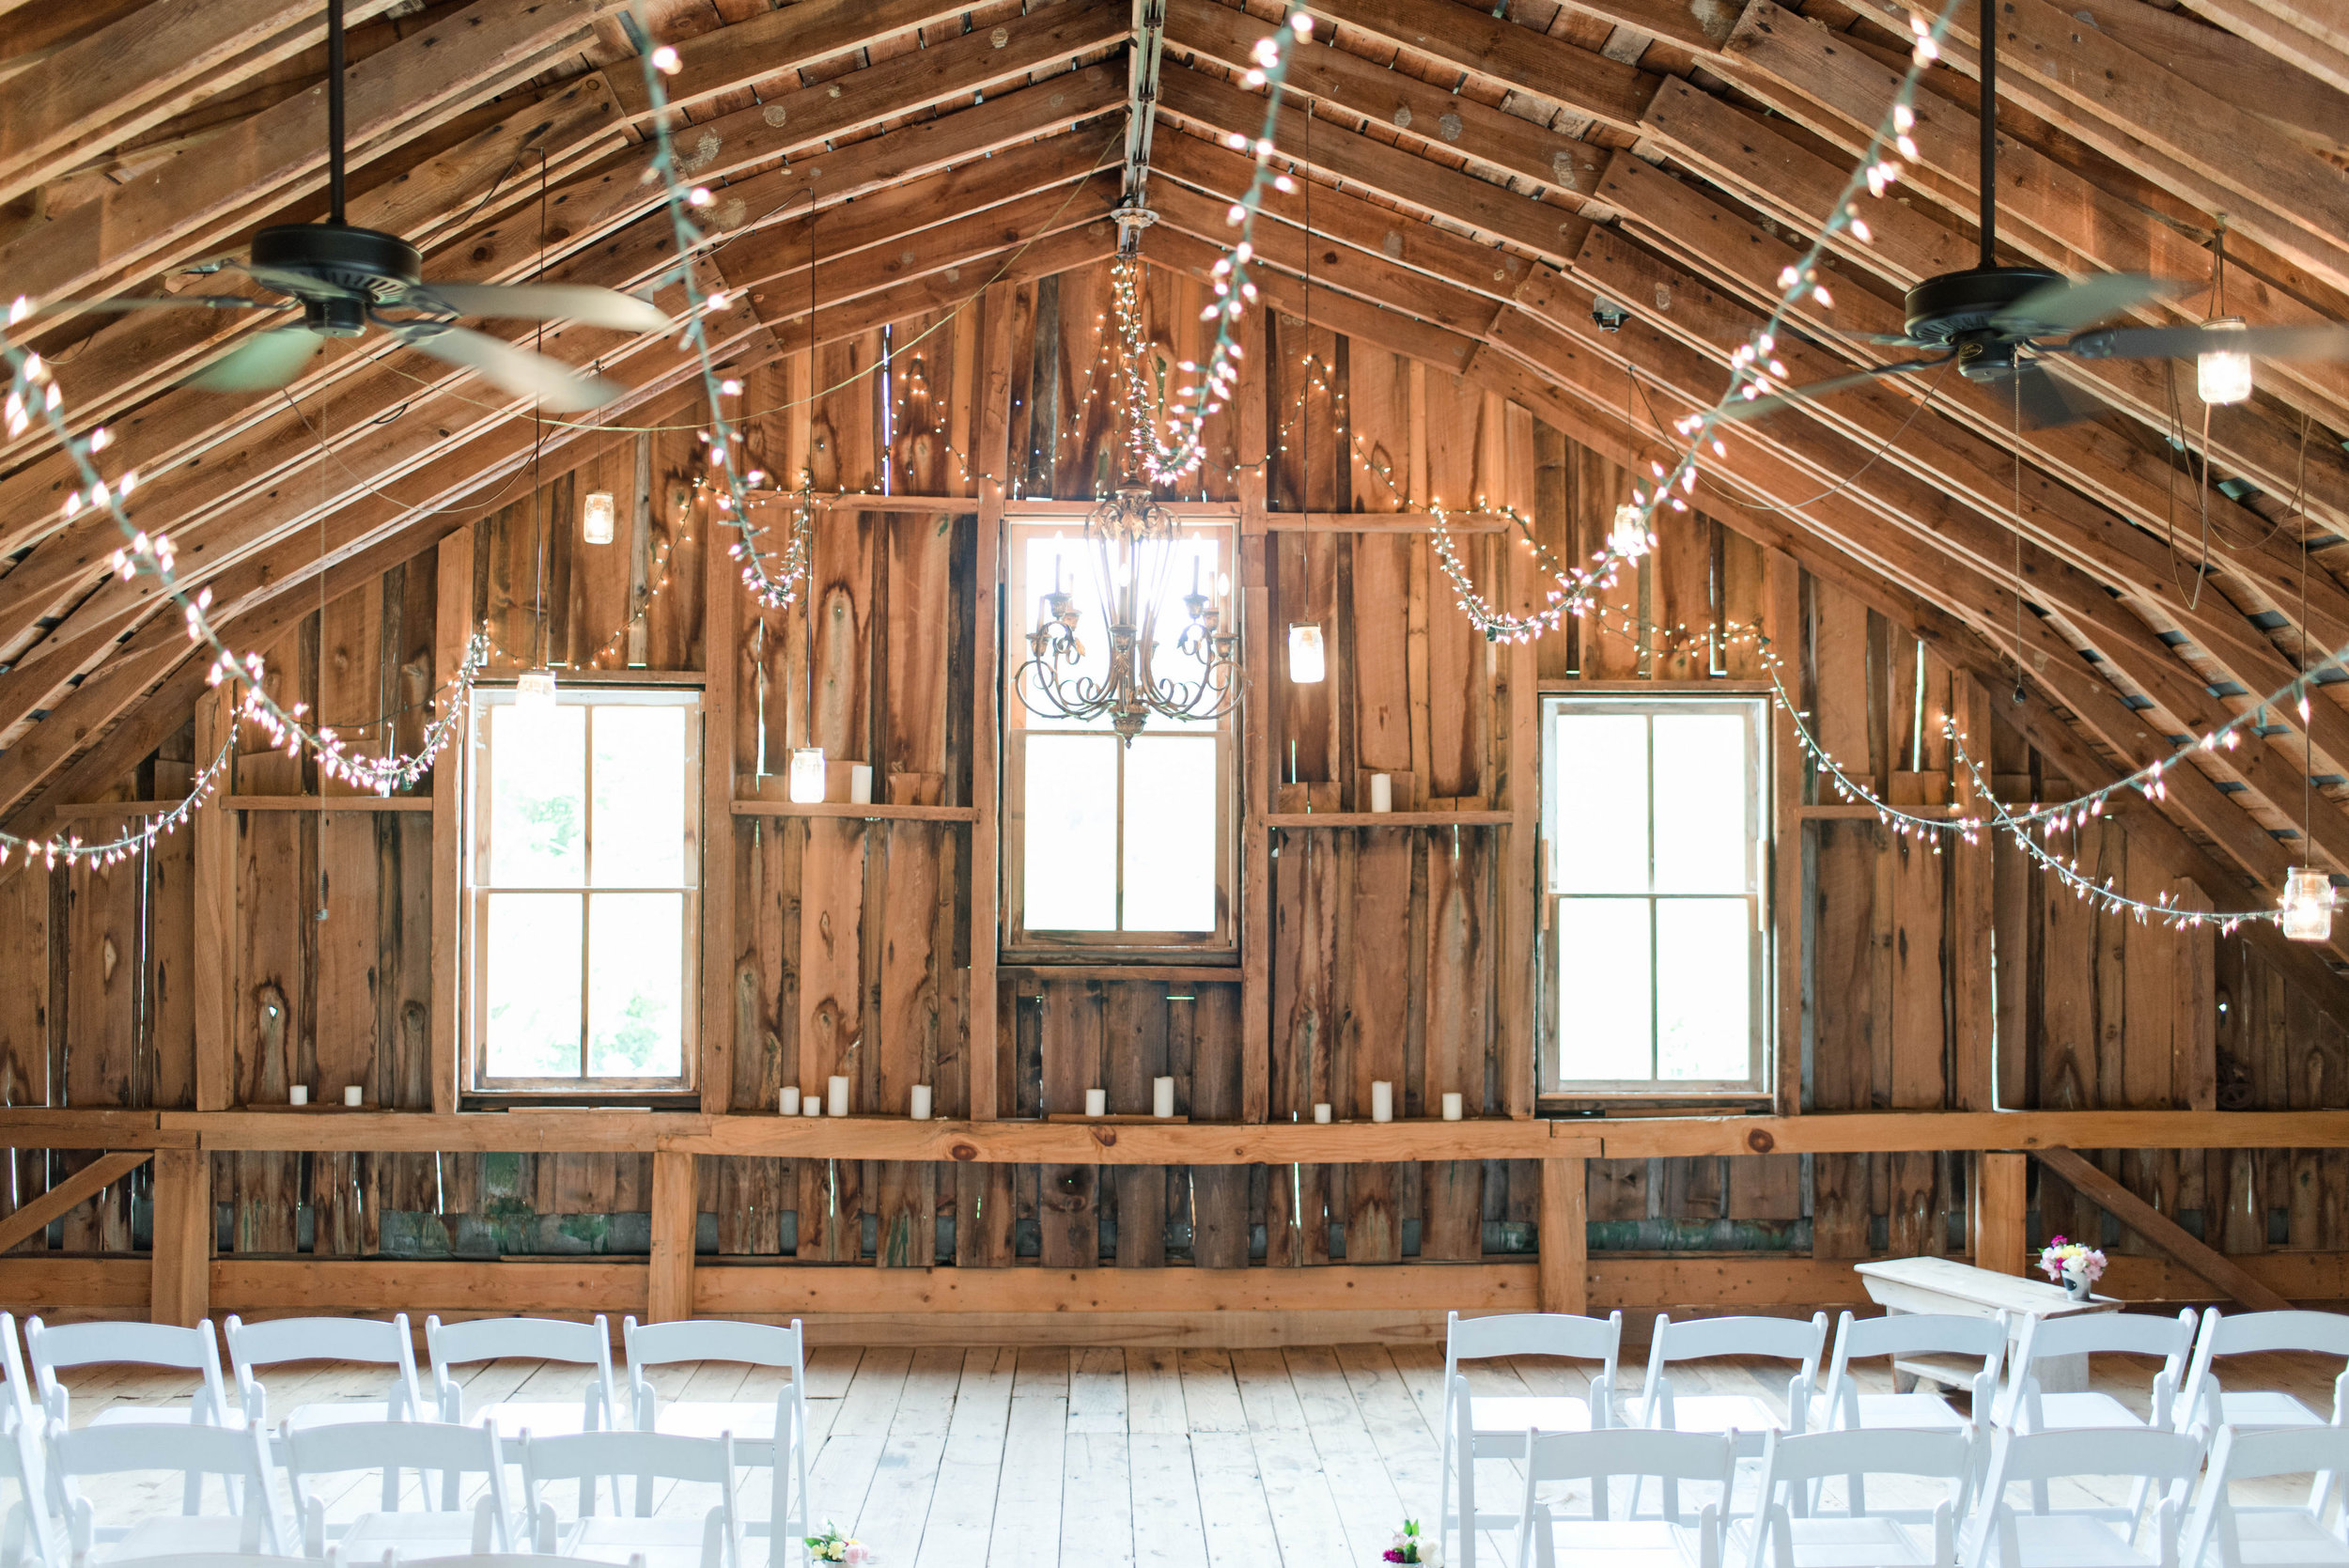 ceremony-barn-virginia-wedding-planner-photos.jpg